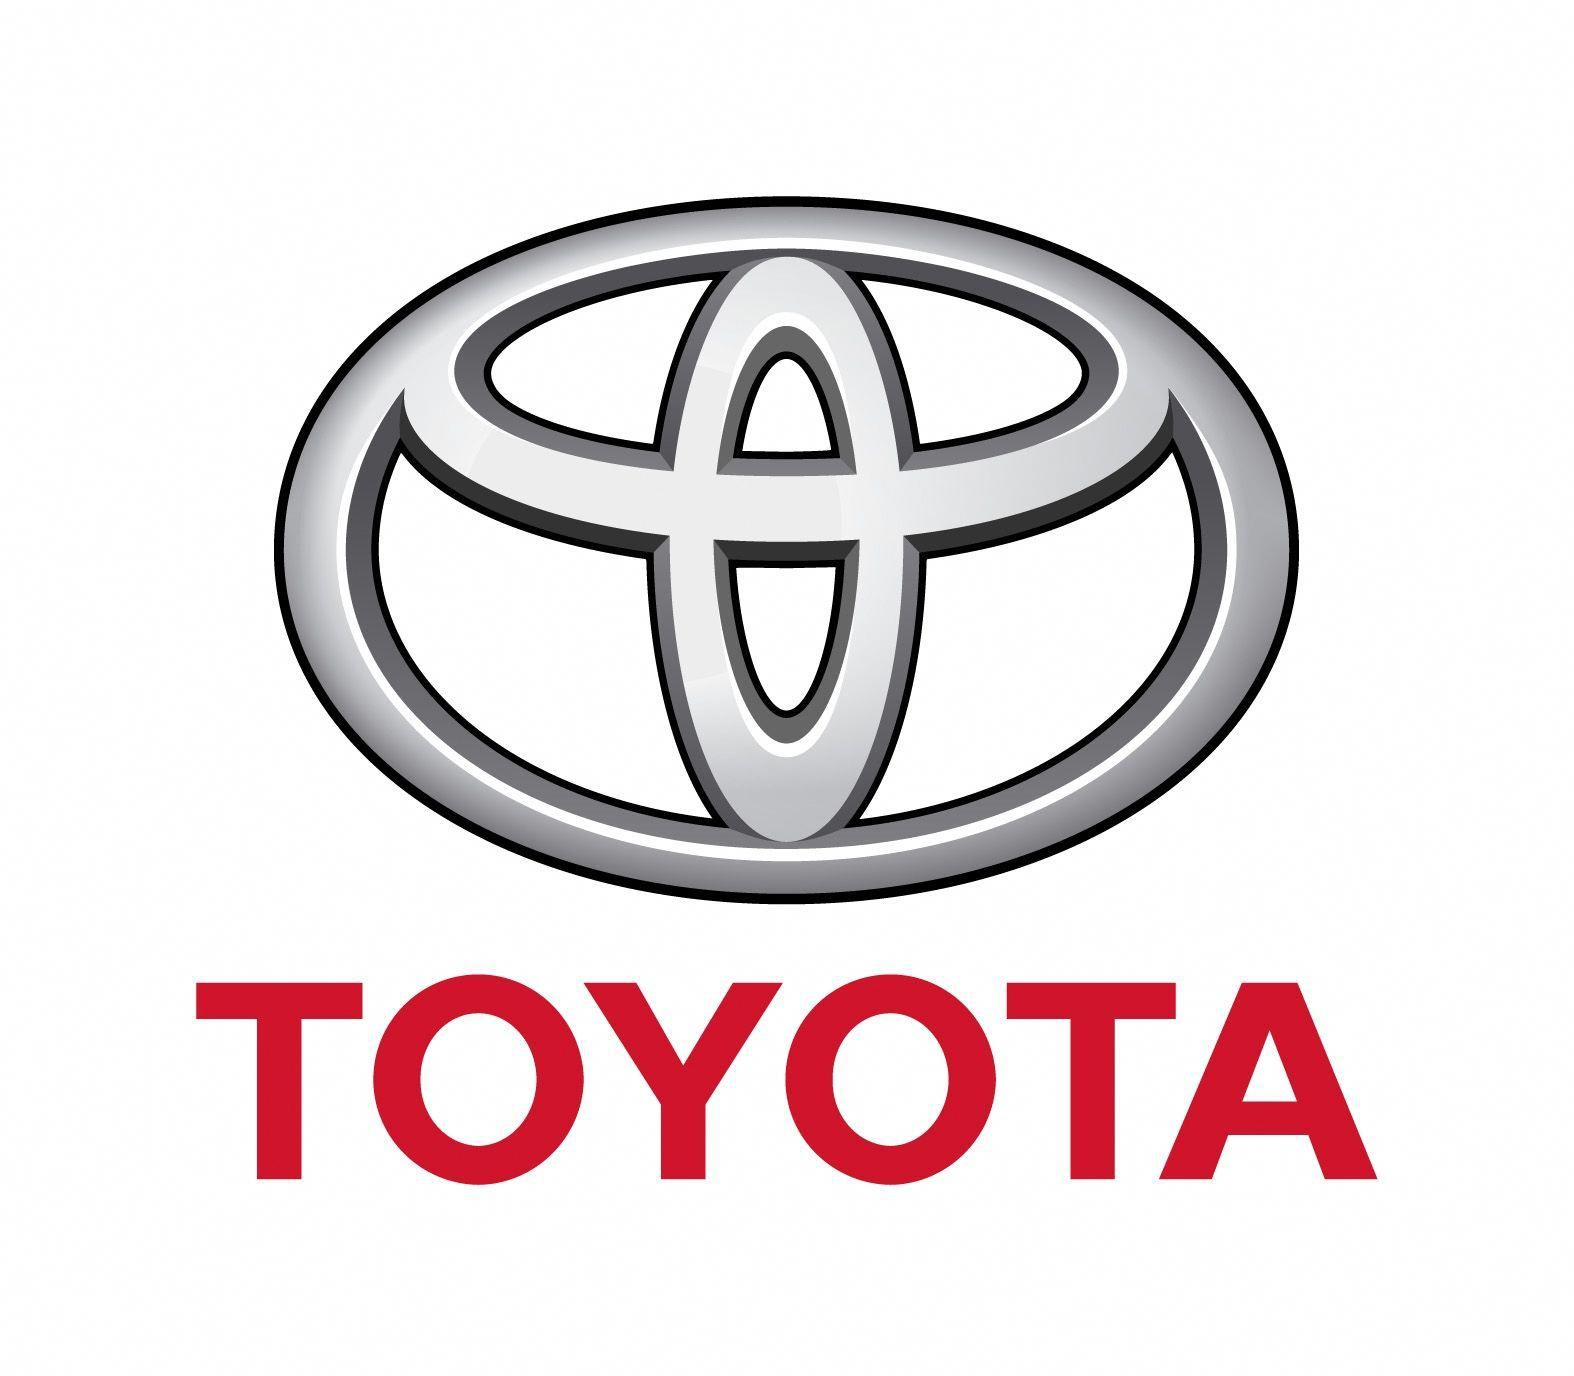 Toyota Logo What Does It Mean Toyota Logo Toyota Car Brands